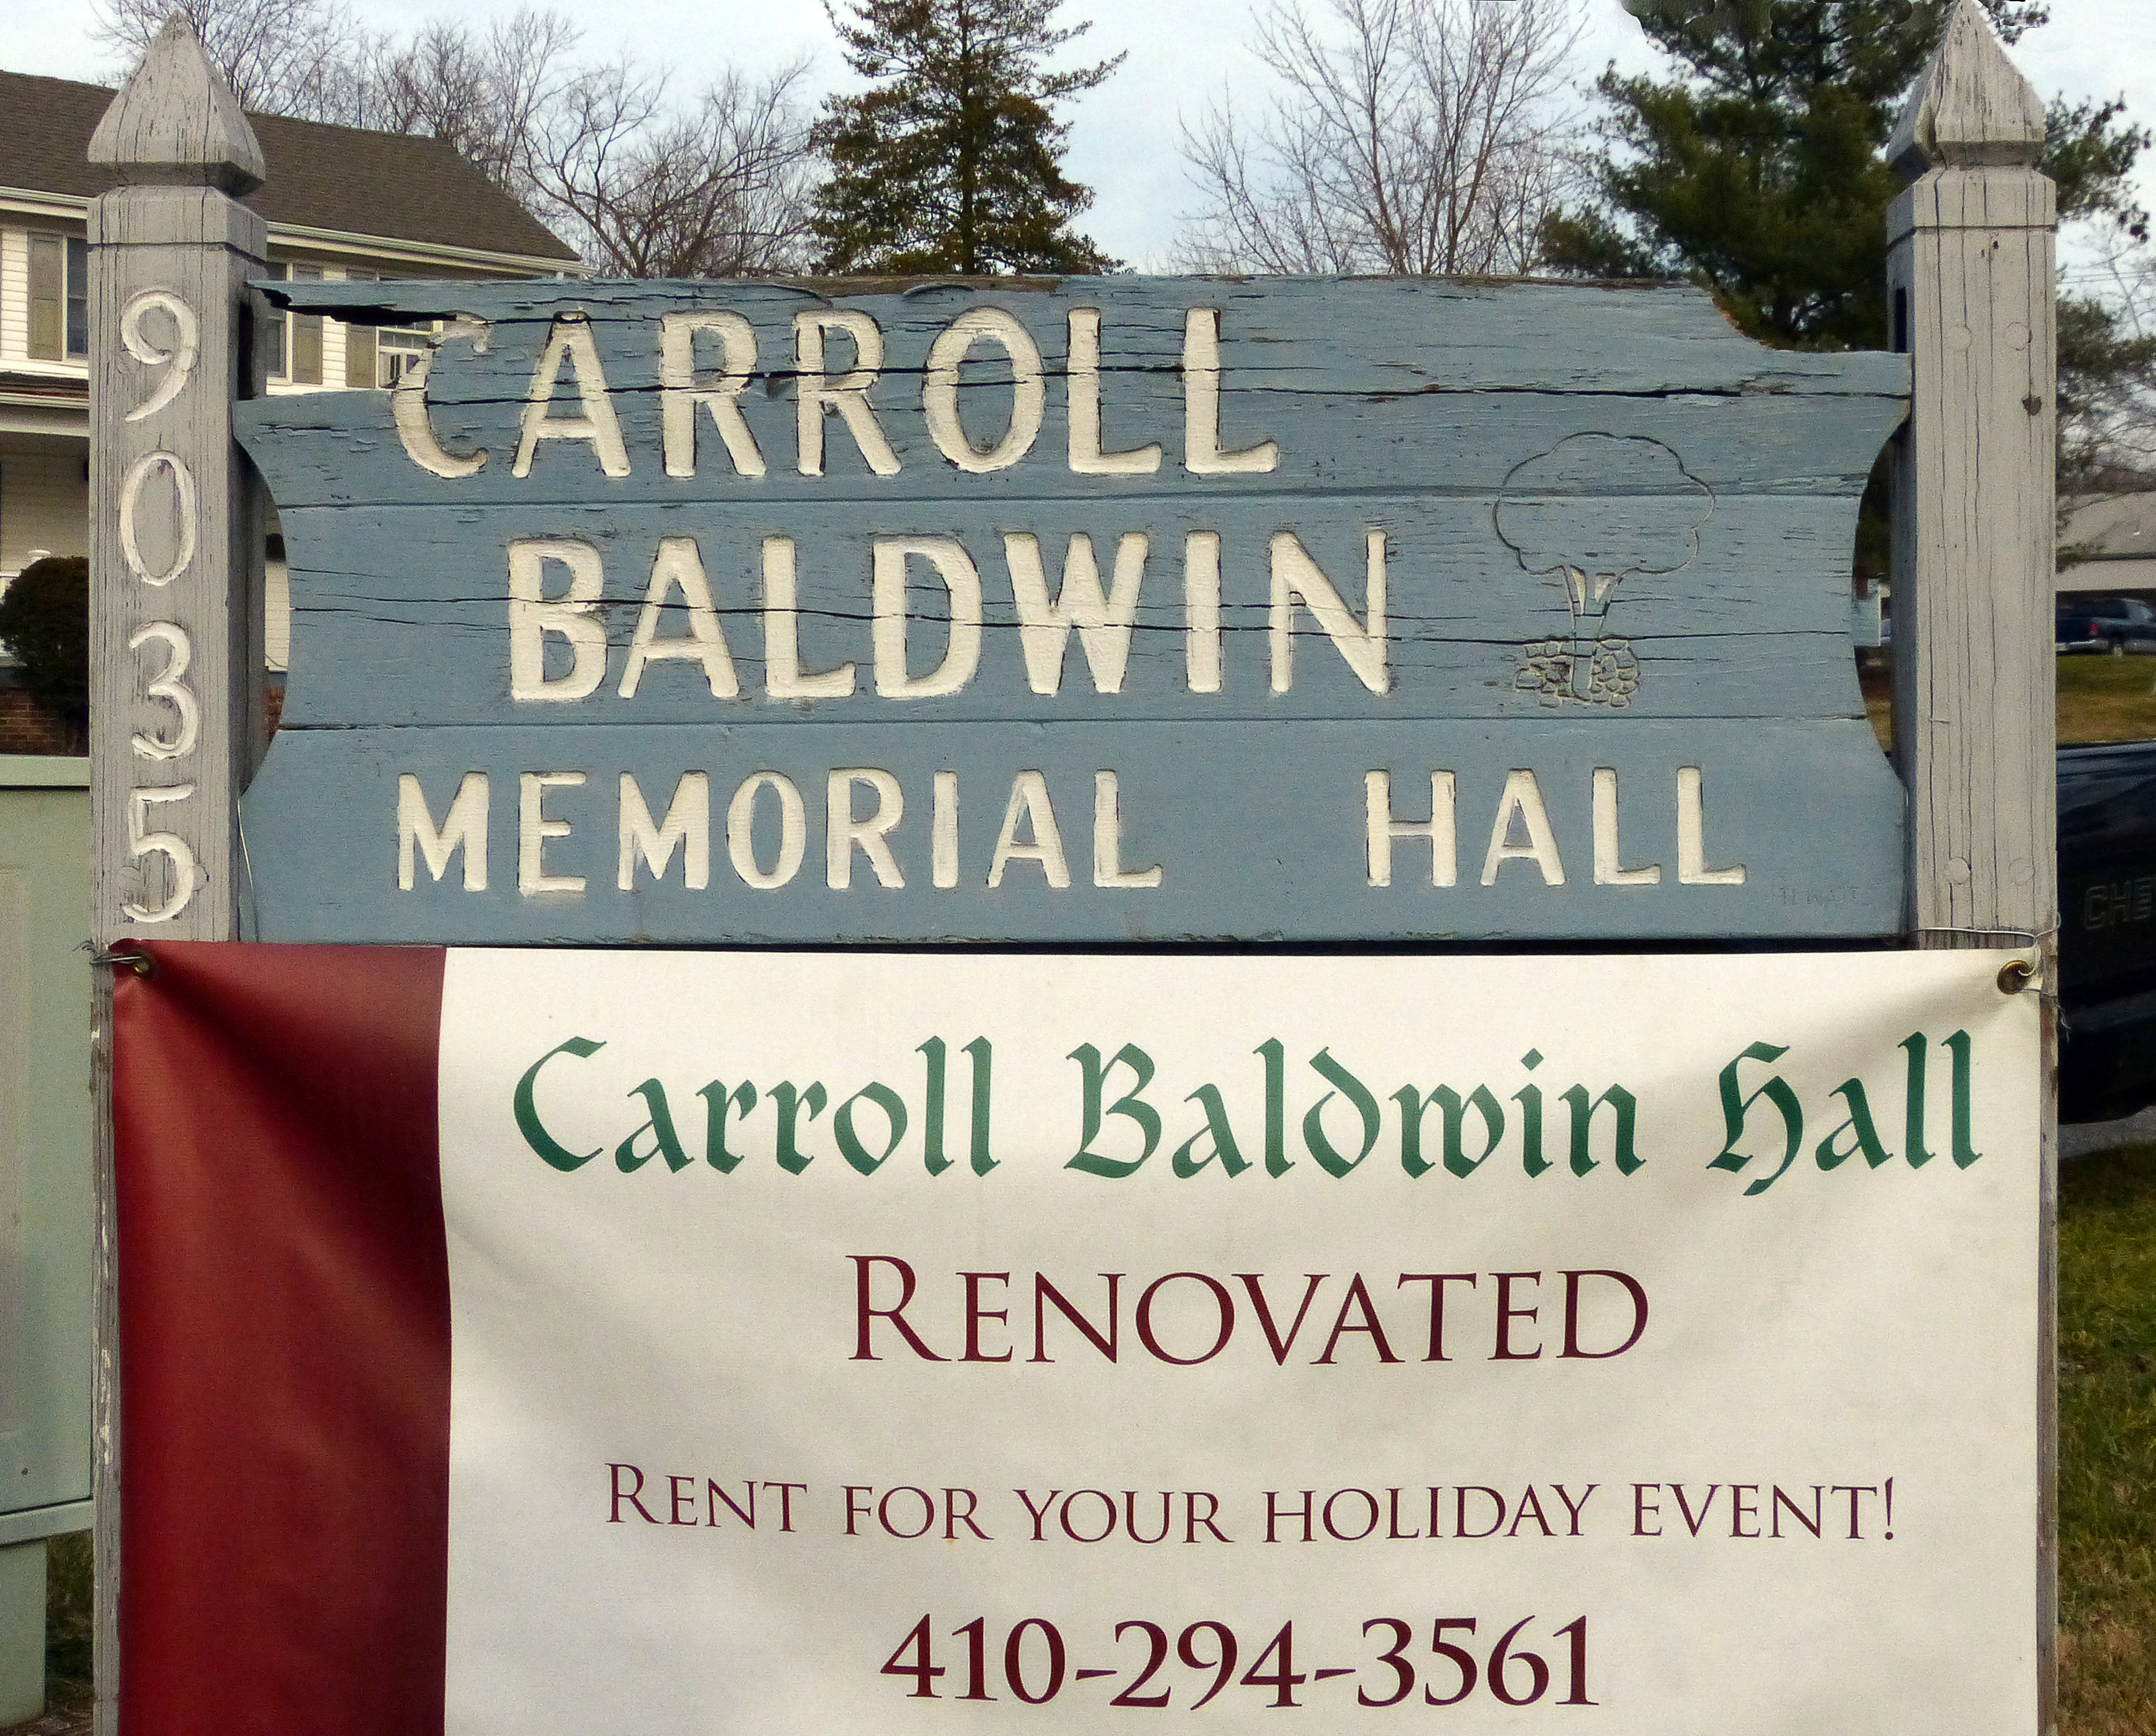 The Carroll Baldwin Memorial Hall Sign